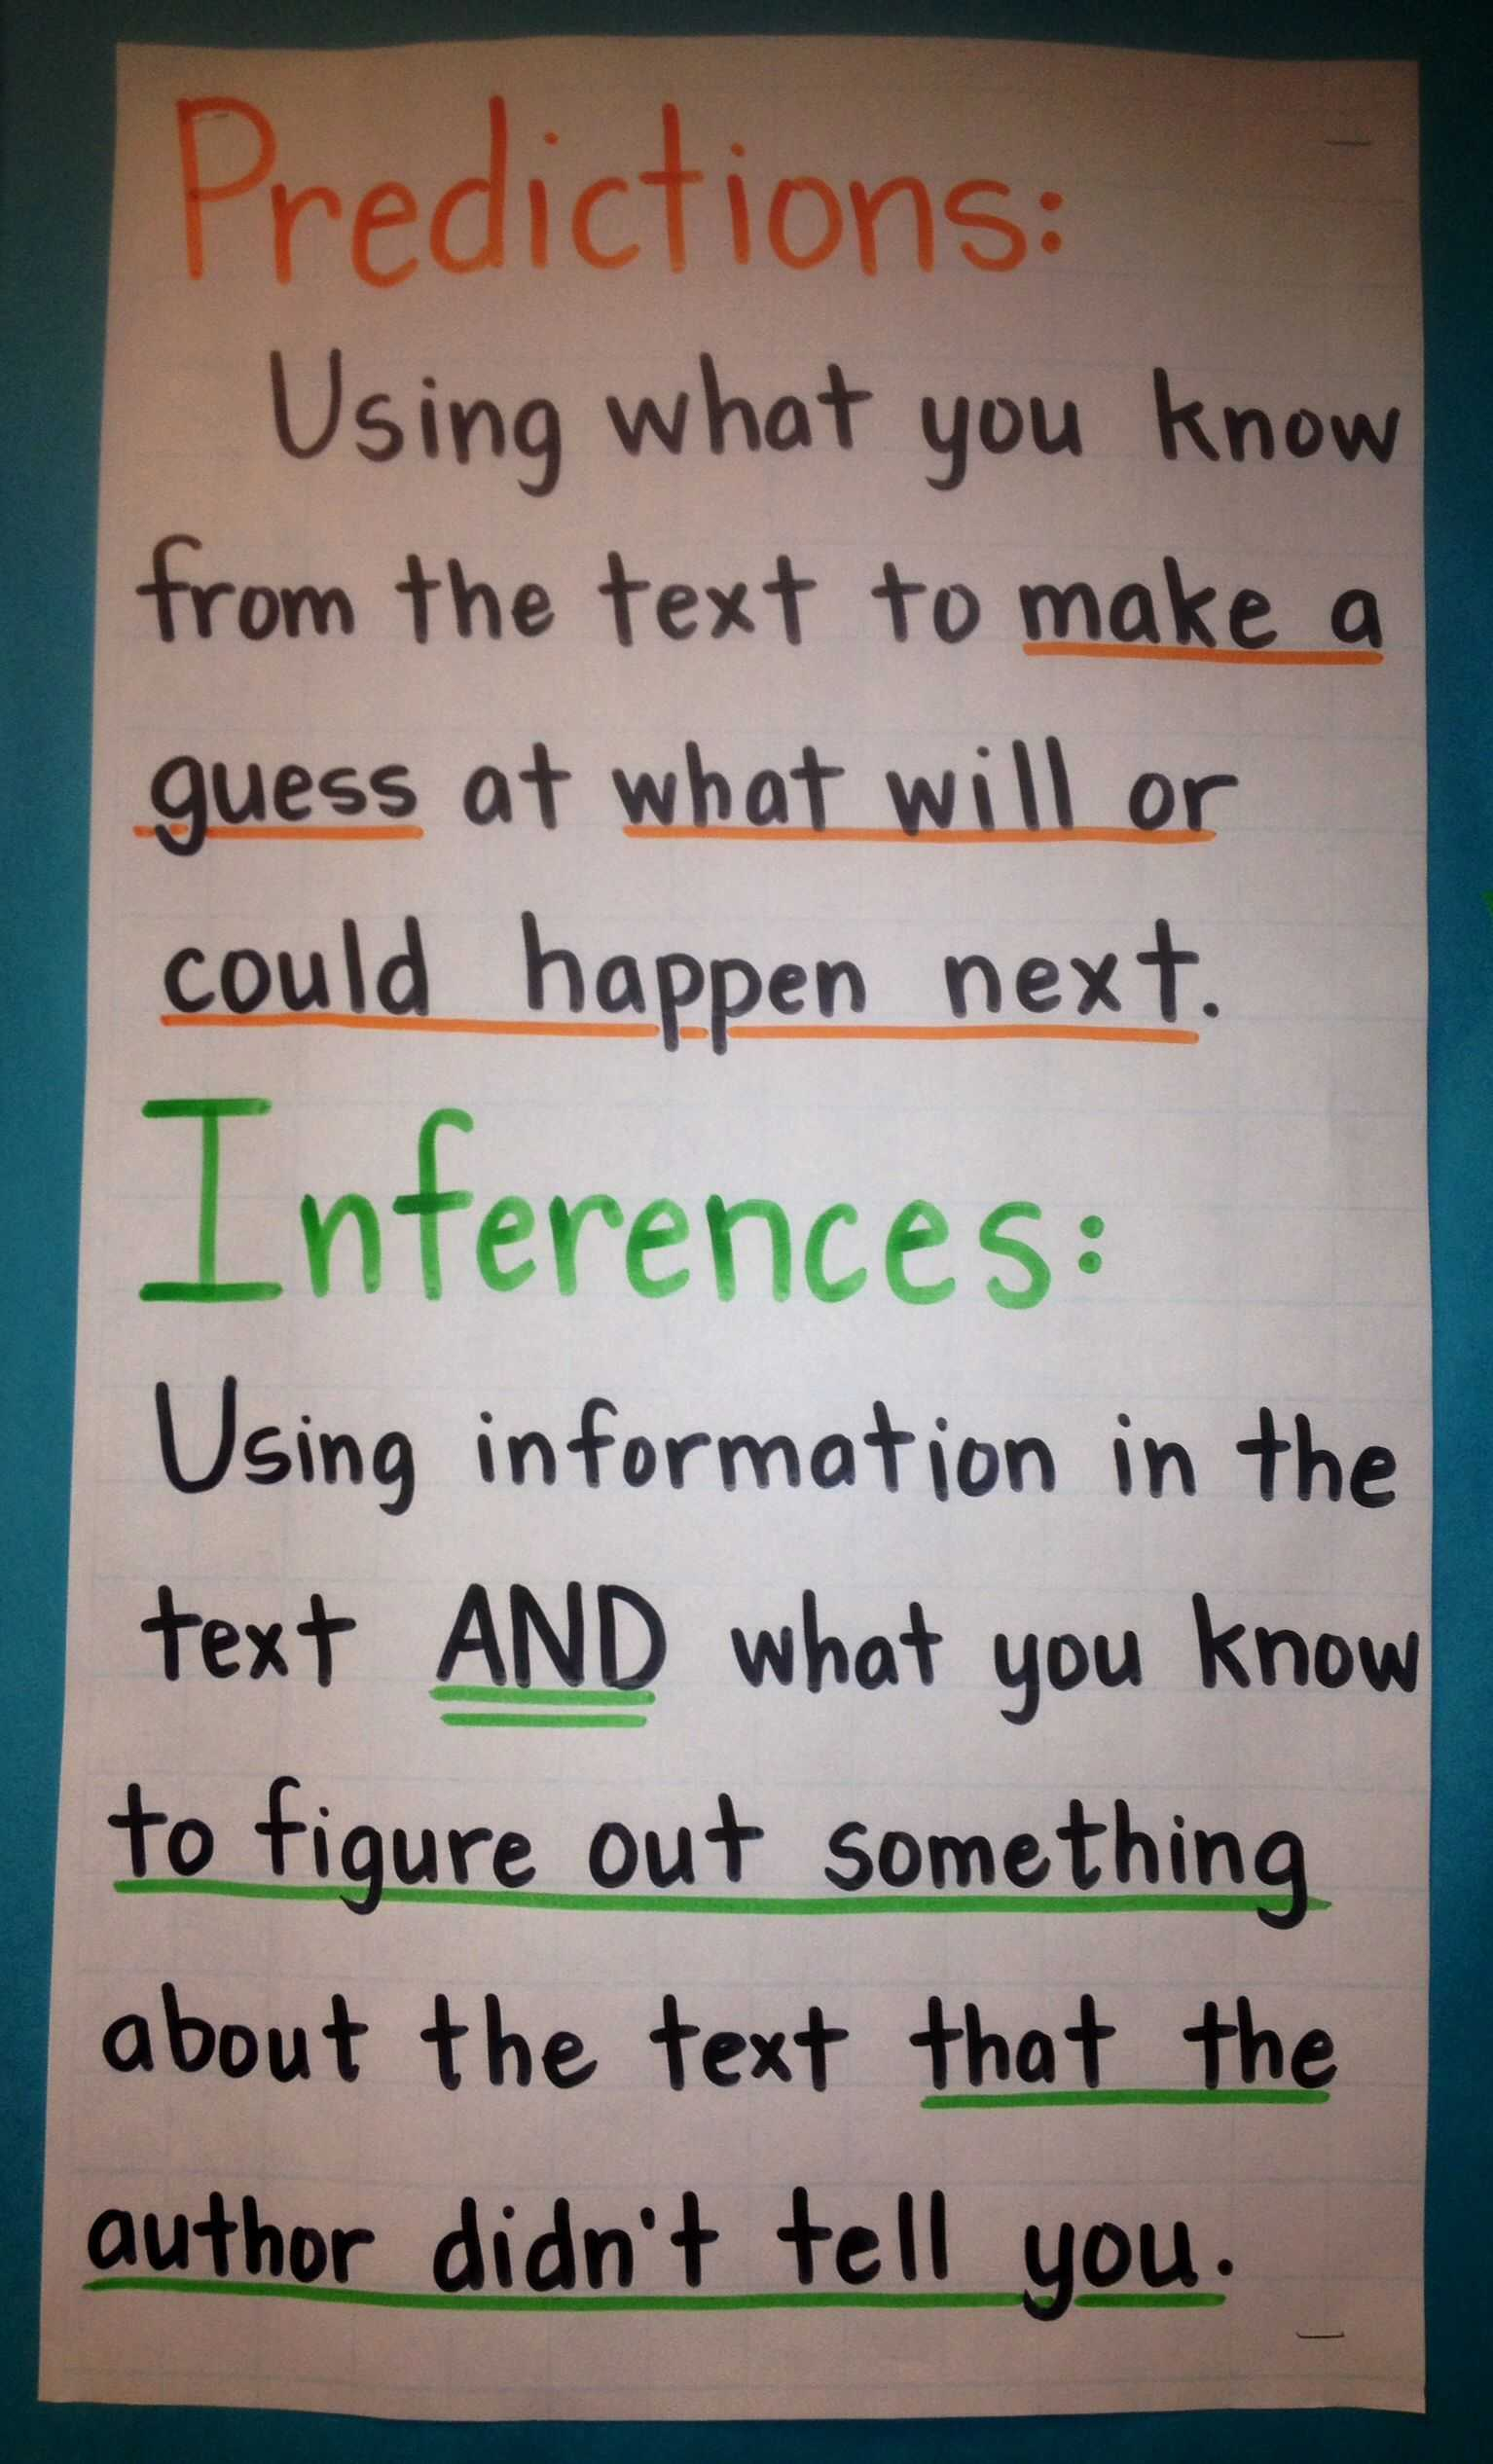 Inferences Worksheet 1 as Well as Predictions and Inferences Anchor Chart Fourth Grade